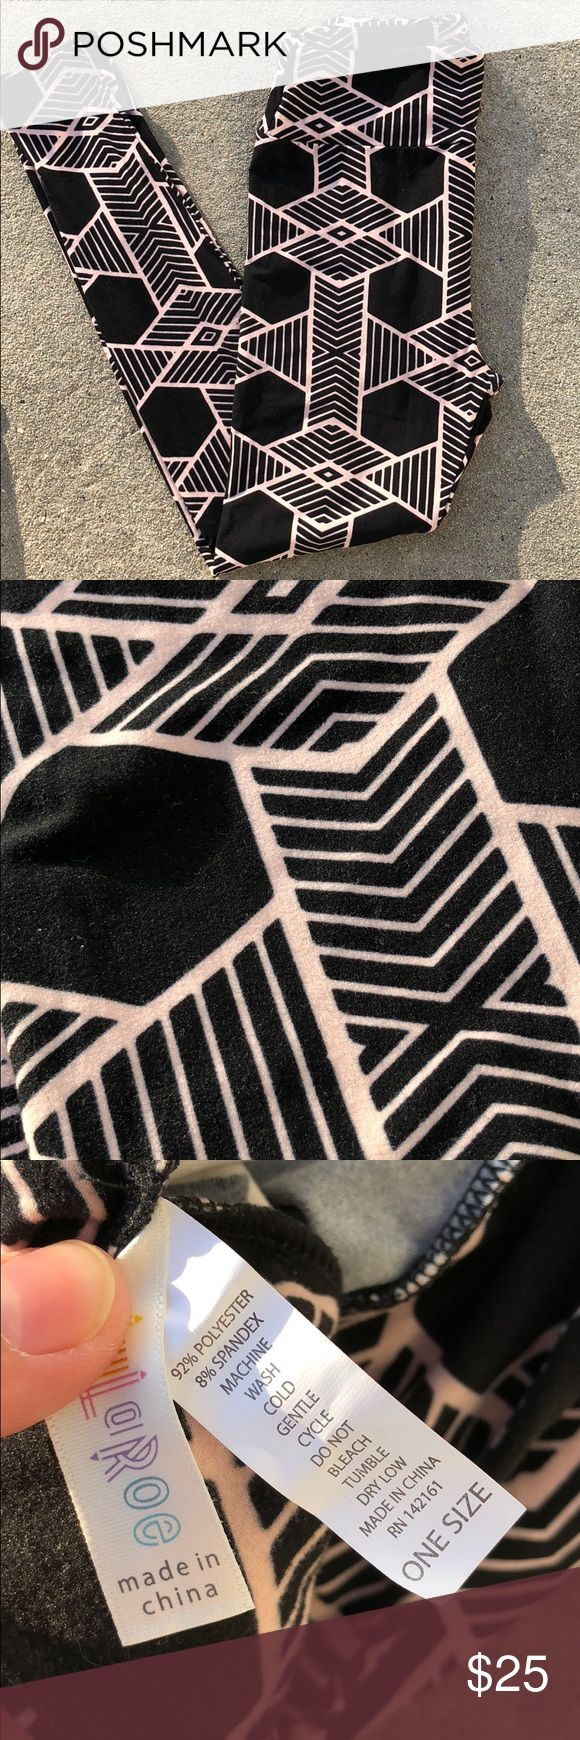 Lularoe one size leggings tribal Aztec pants Cute pair of Lularoe leggings in a size one size. They are in excellent condition and very comfortable. This pair is 92% polyester and 8% spandex. LuLaRoe Pants Leggings